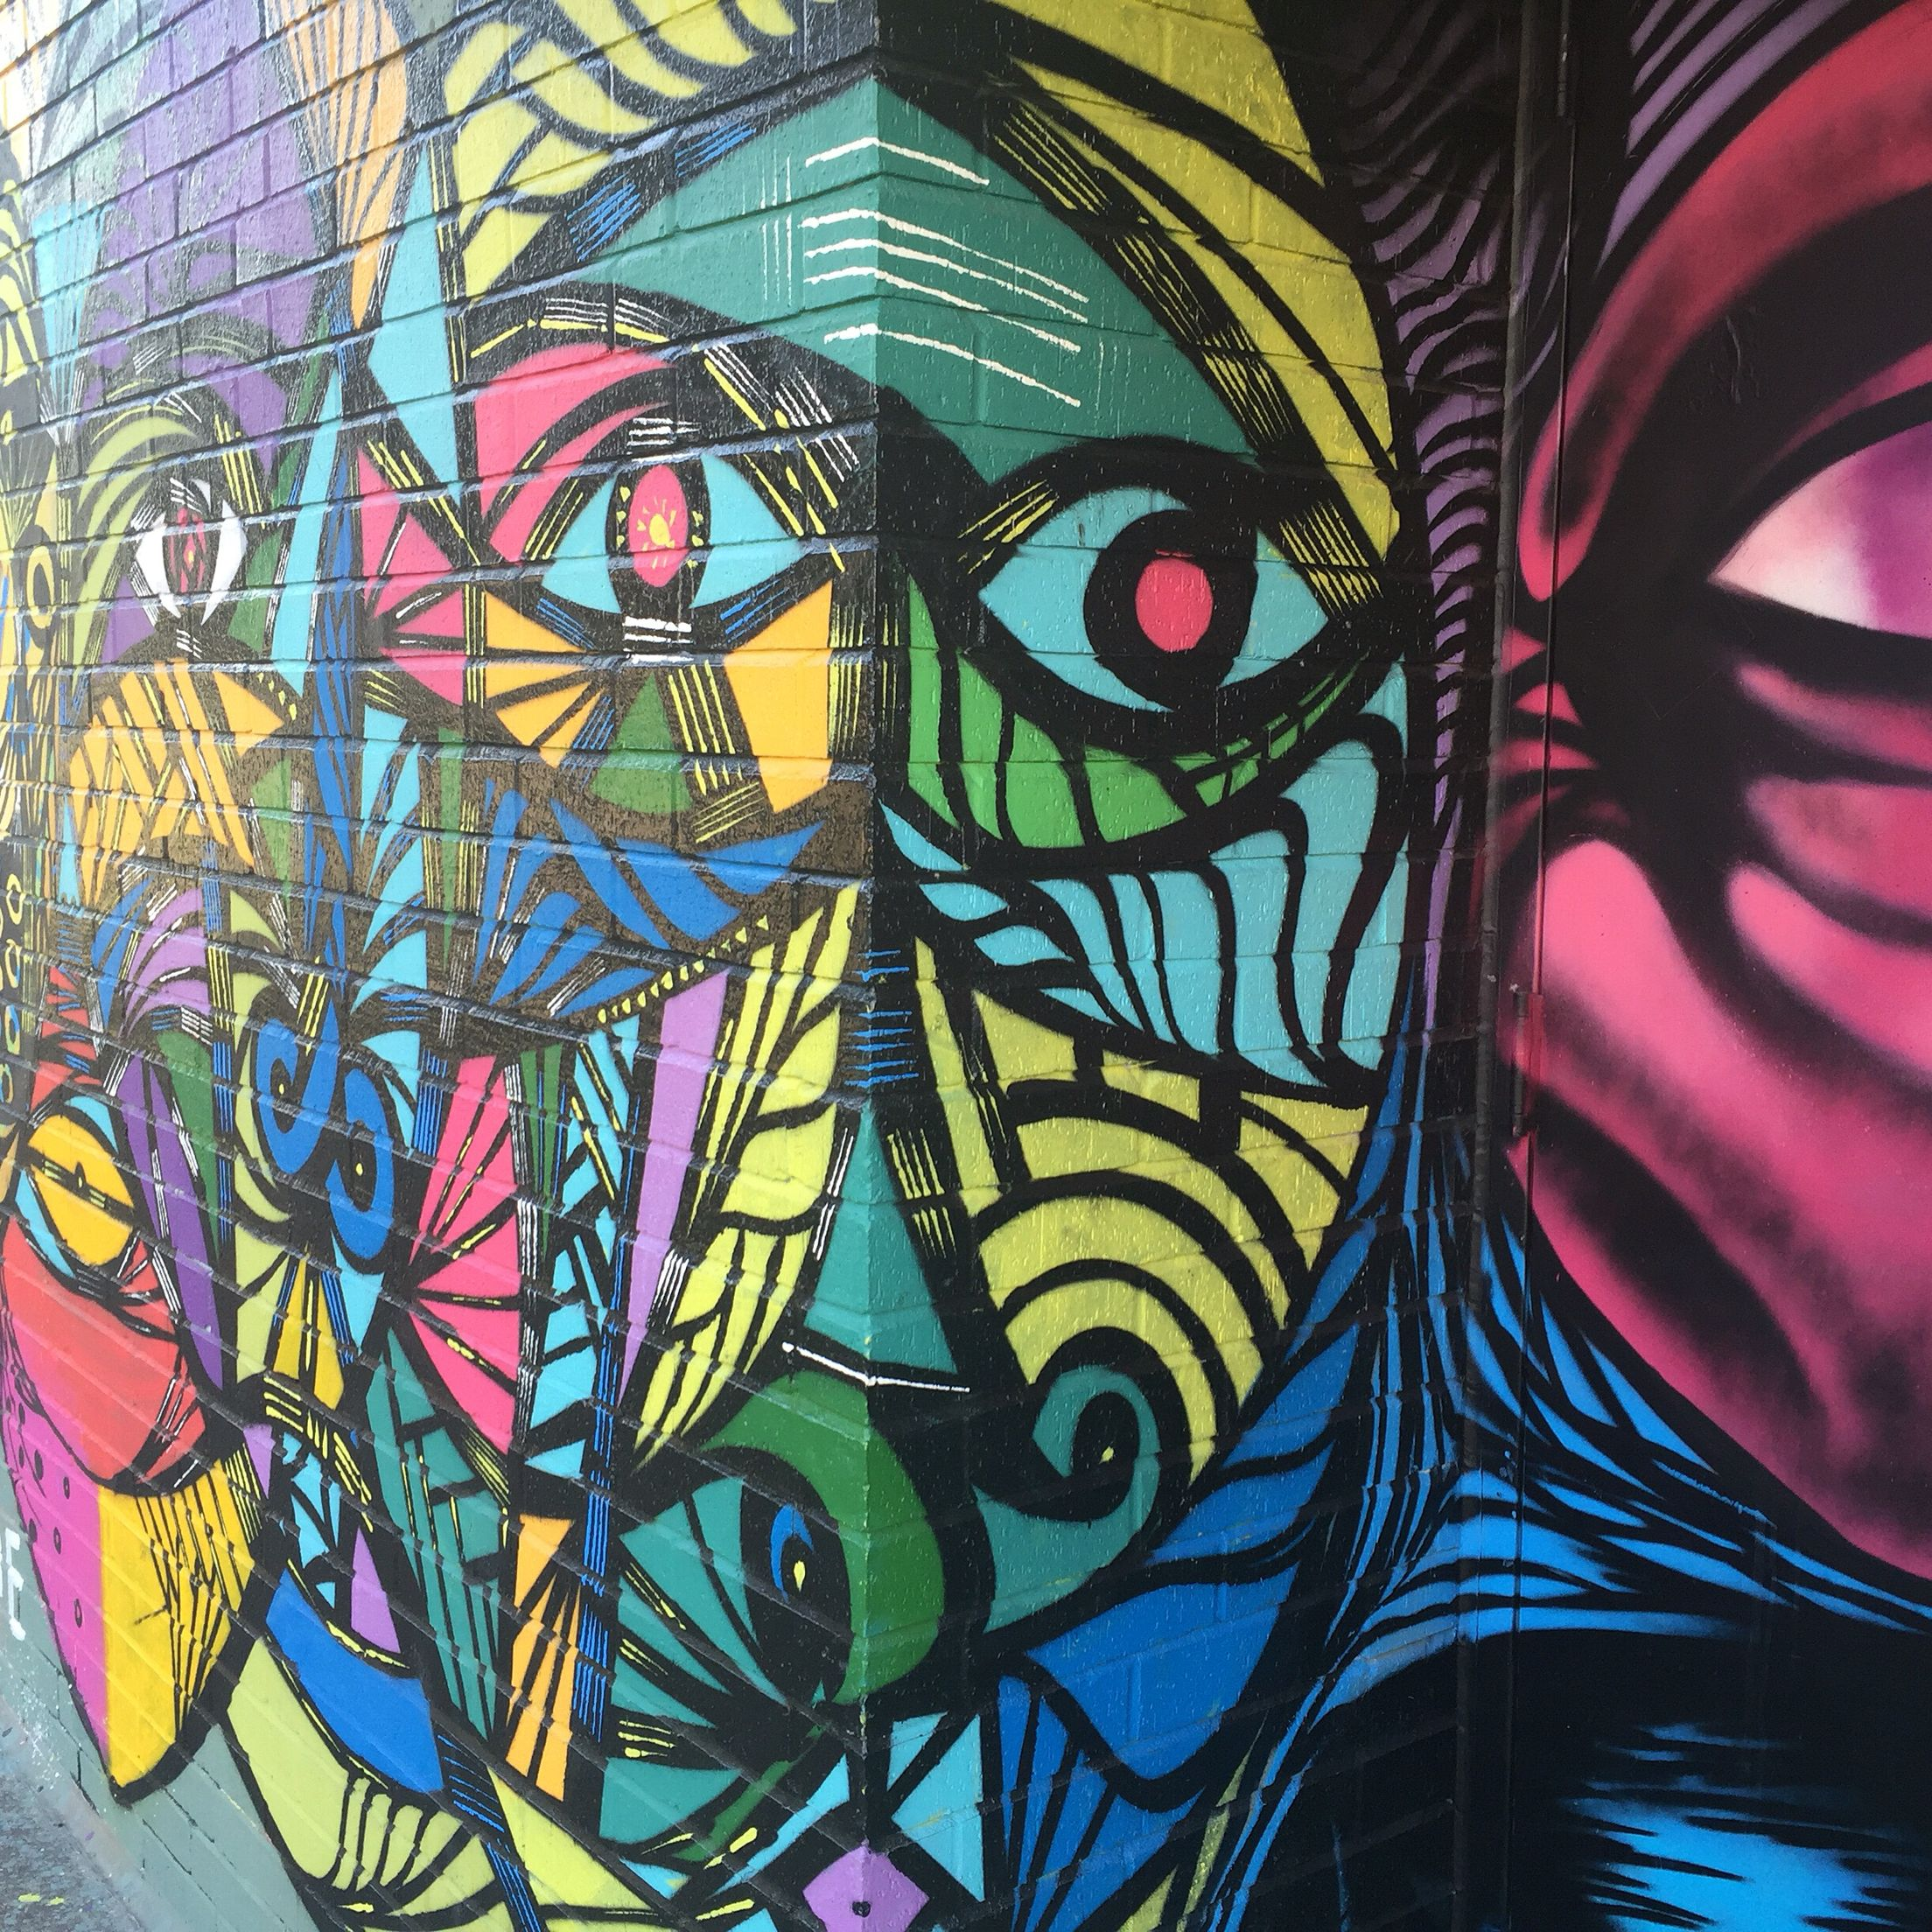 Midtown Houston graffiti mural artwork. (With images